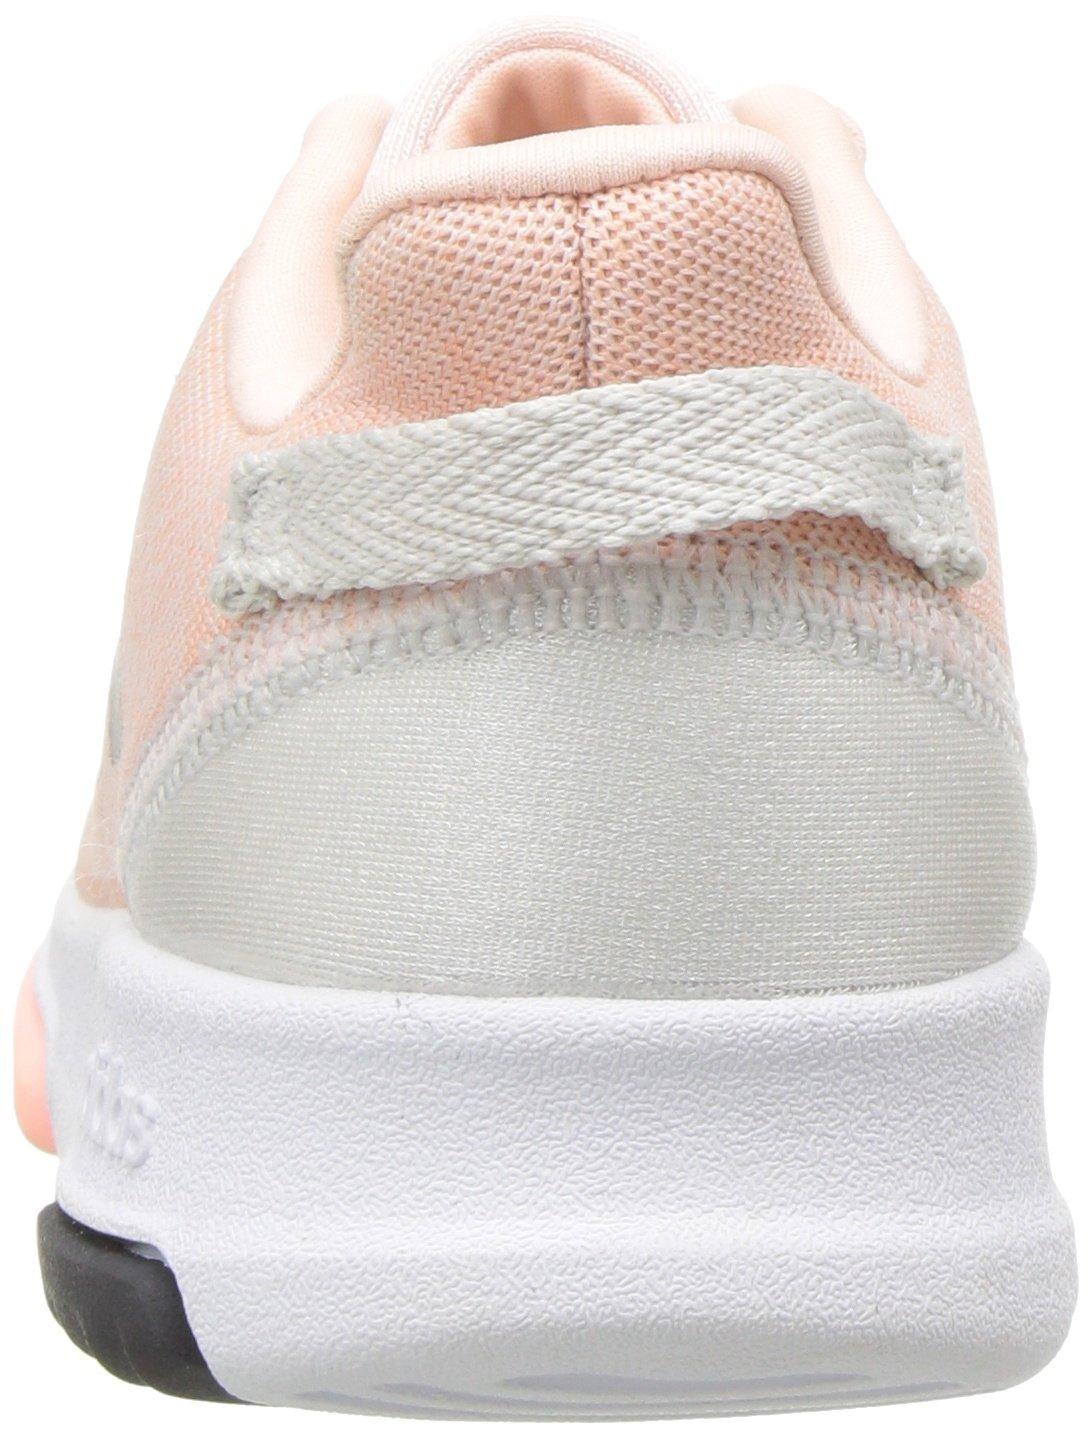 adidas Kids CF Racer TR Running Shoe, Haze Coral/Metallic Silver/White, 4K M US Toddler by adidas (Image #2)